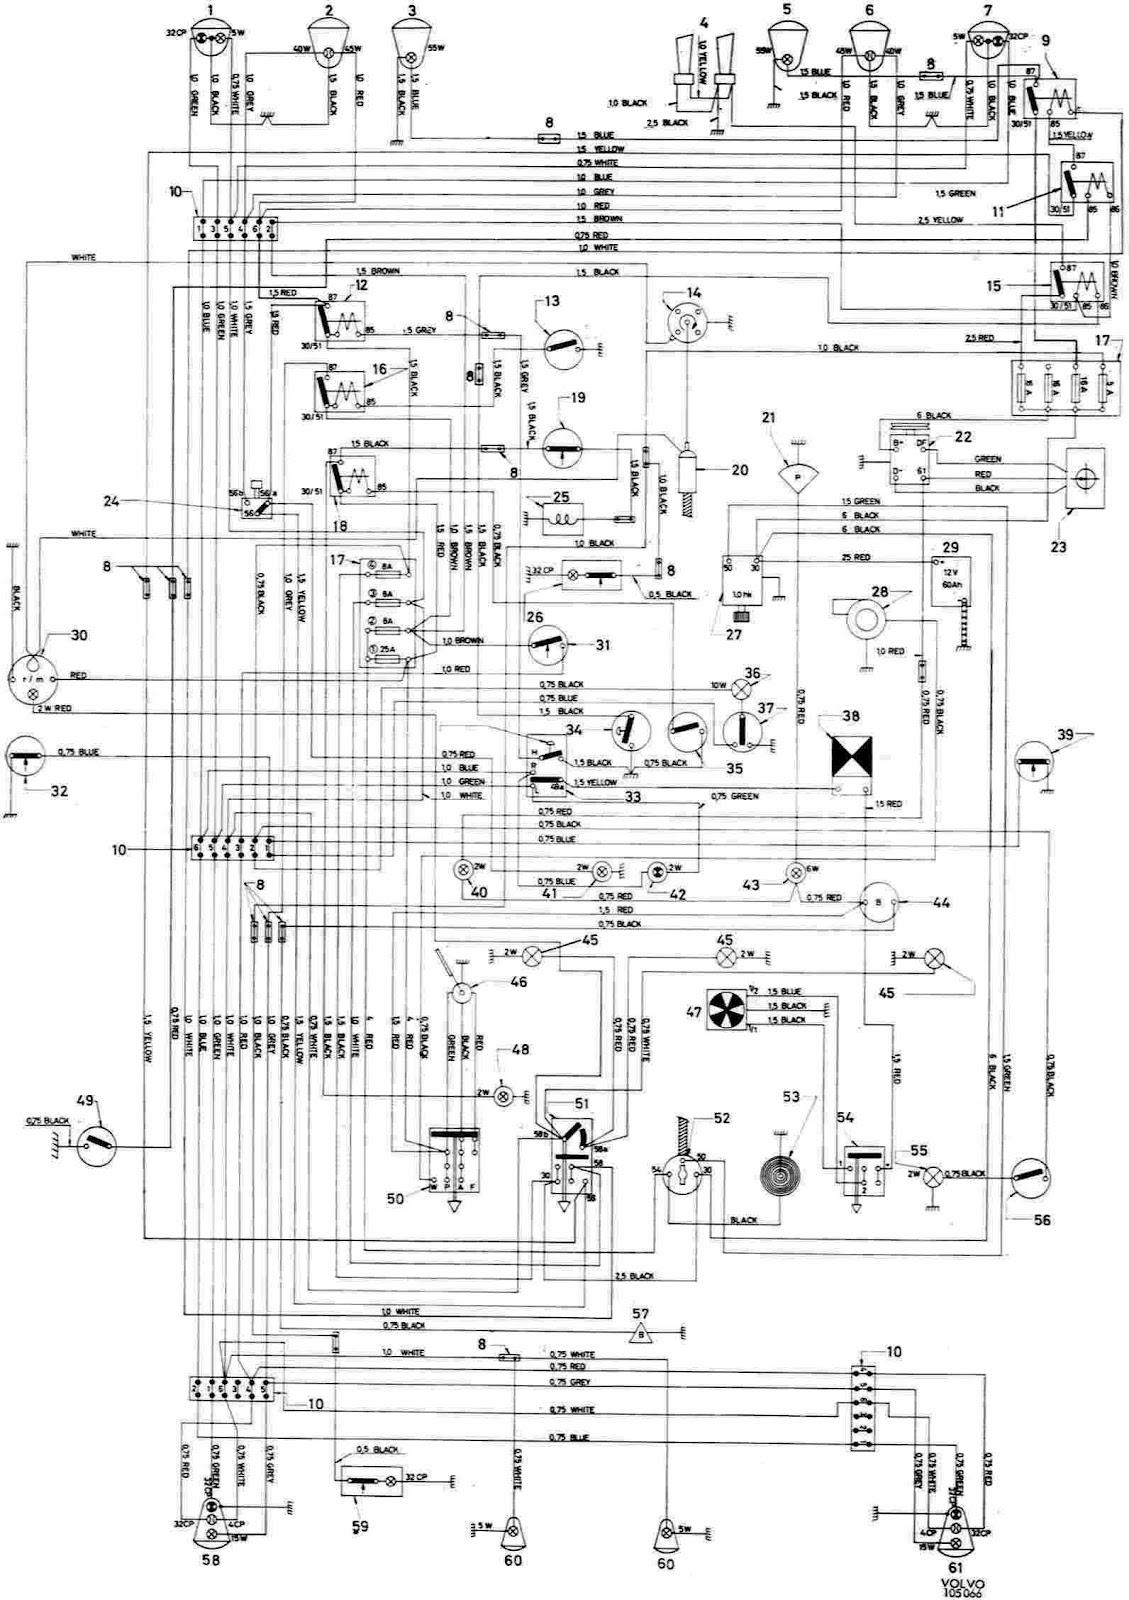 hight resolution of wiring diagram further volvo 240 radio antenna along with 2005 volvo 2005 volvo s40 stereo wiring harness diagram